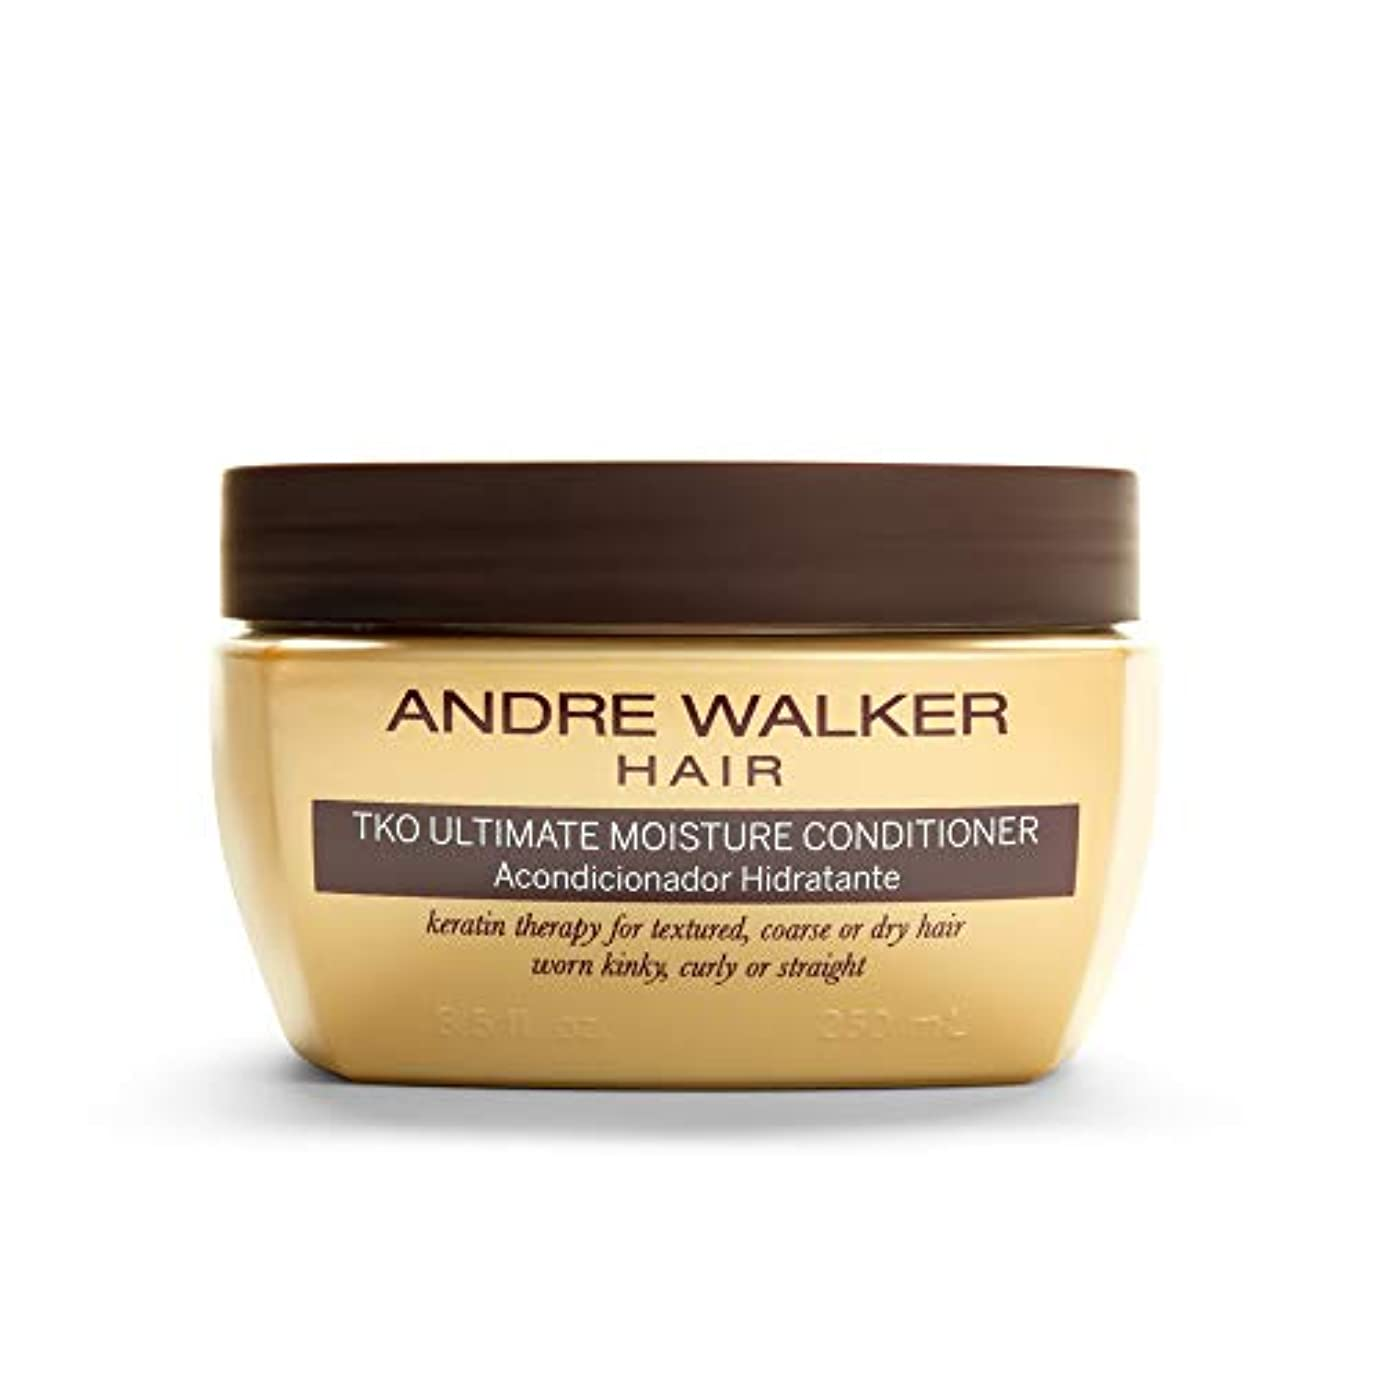 学習者果てしない戸口Andre Walker Hair The Gold System TKO Ultimate Moisture Conditioner 8.5 fl oz. by Andre Walker Hair